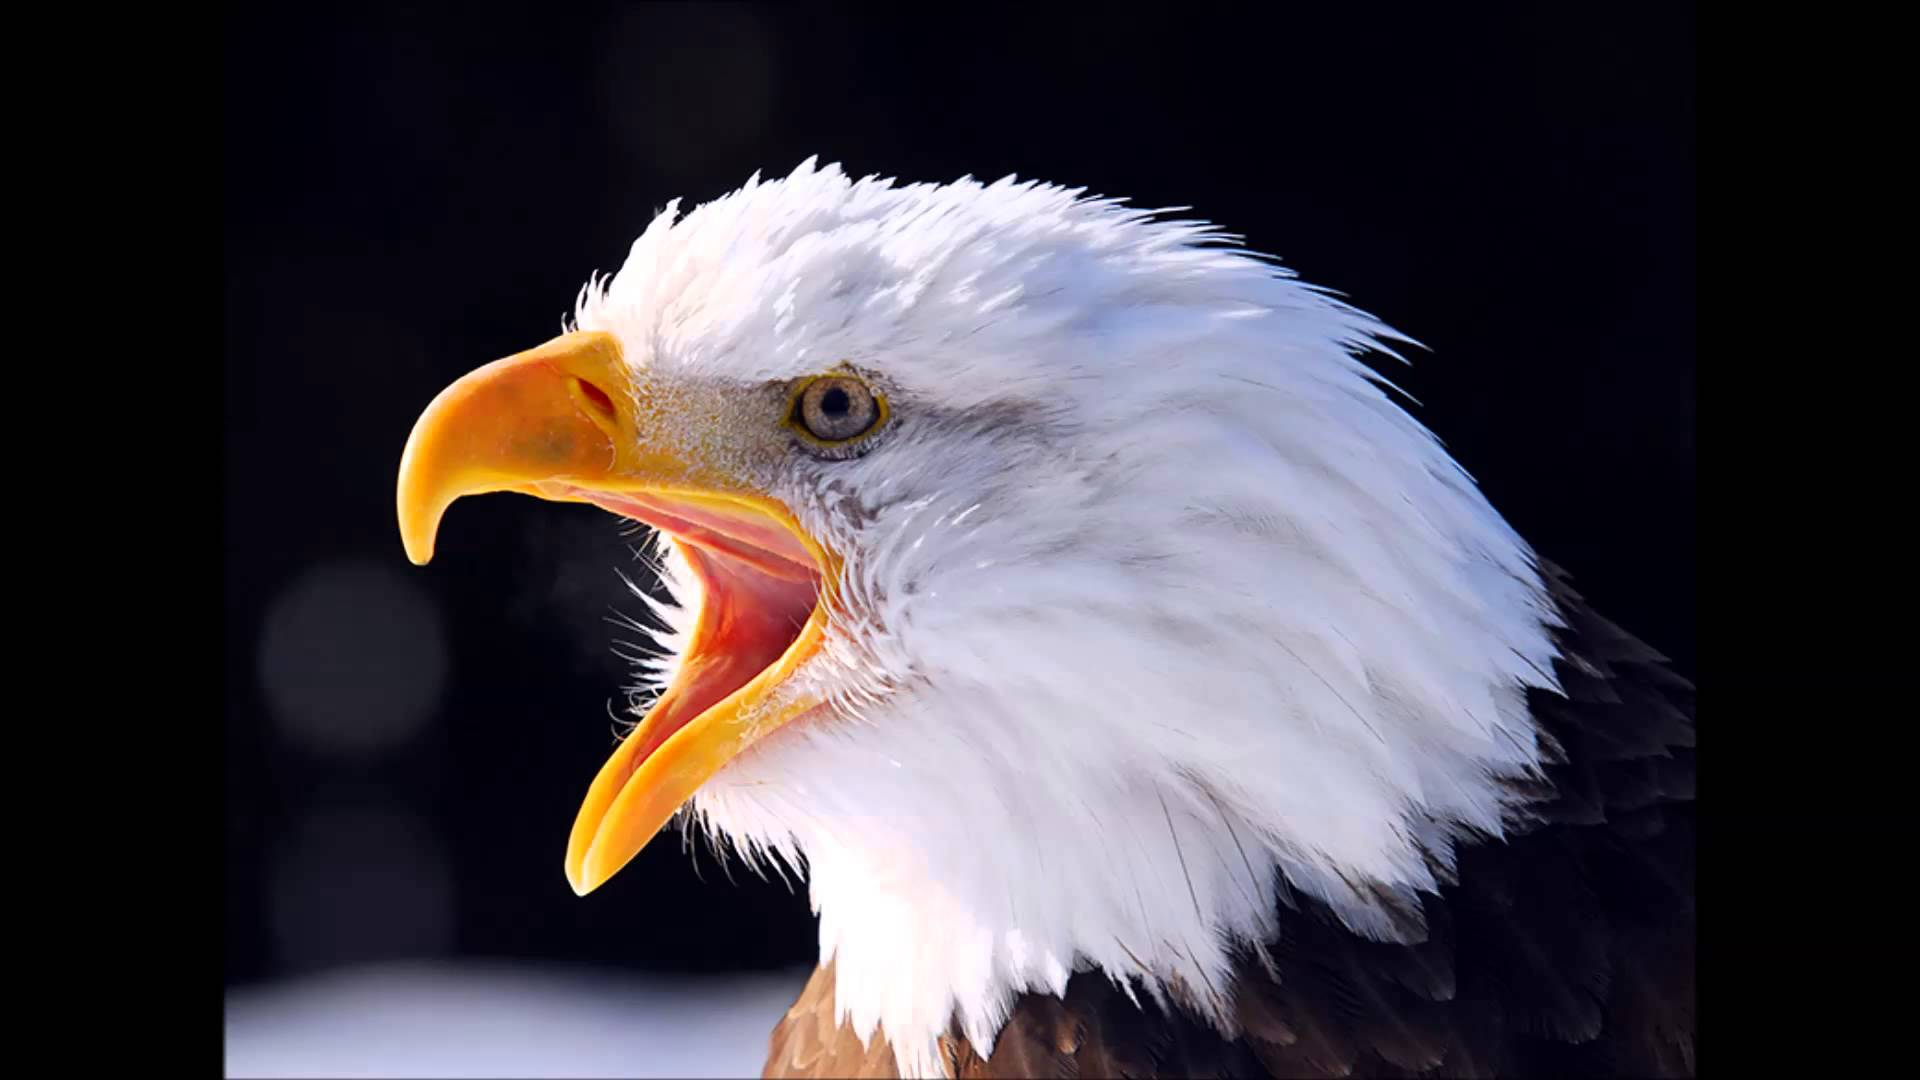 american bald eagle sounds and calls - YouTube